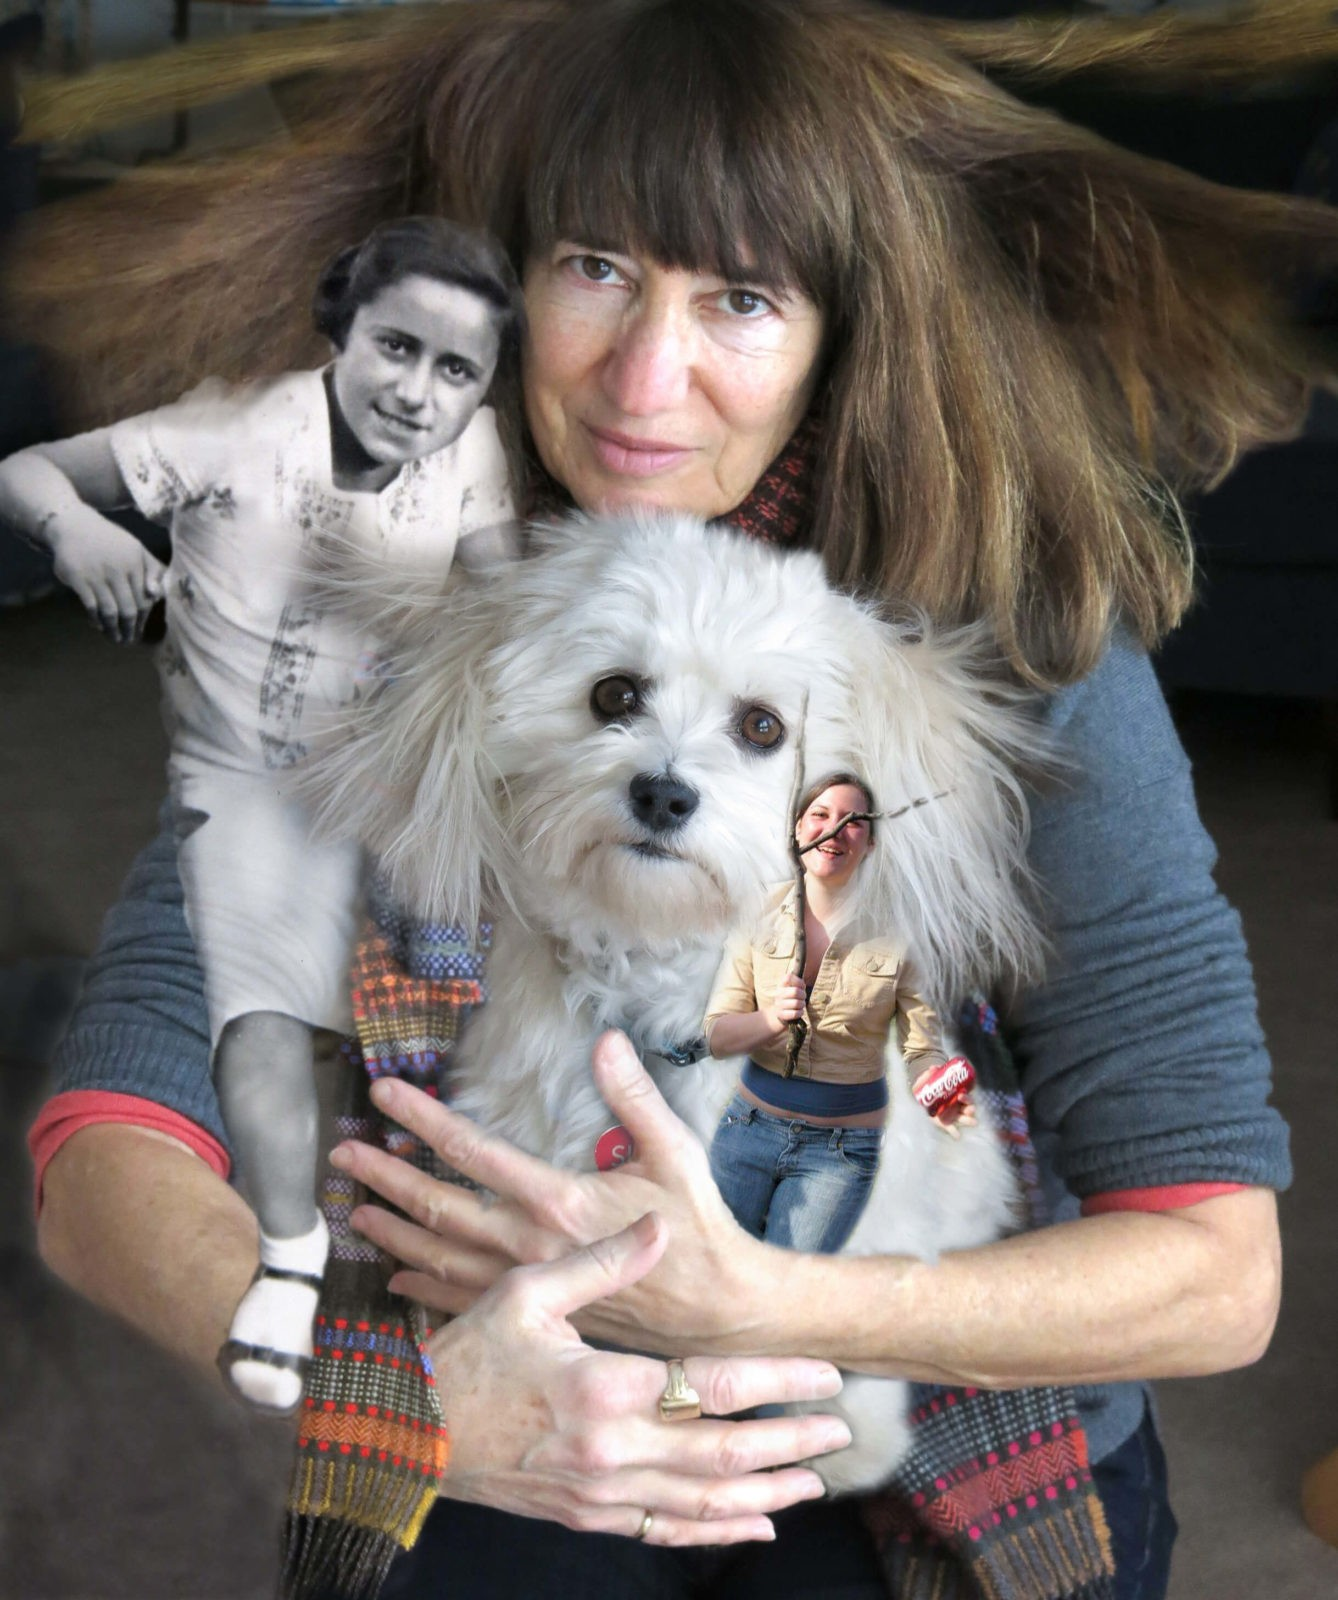 Robin botie in Ithaca, New York, holds her her daughter, Marika Warden, her Aunt Bope as a girl, and her dog.